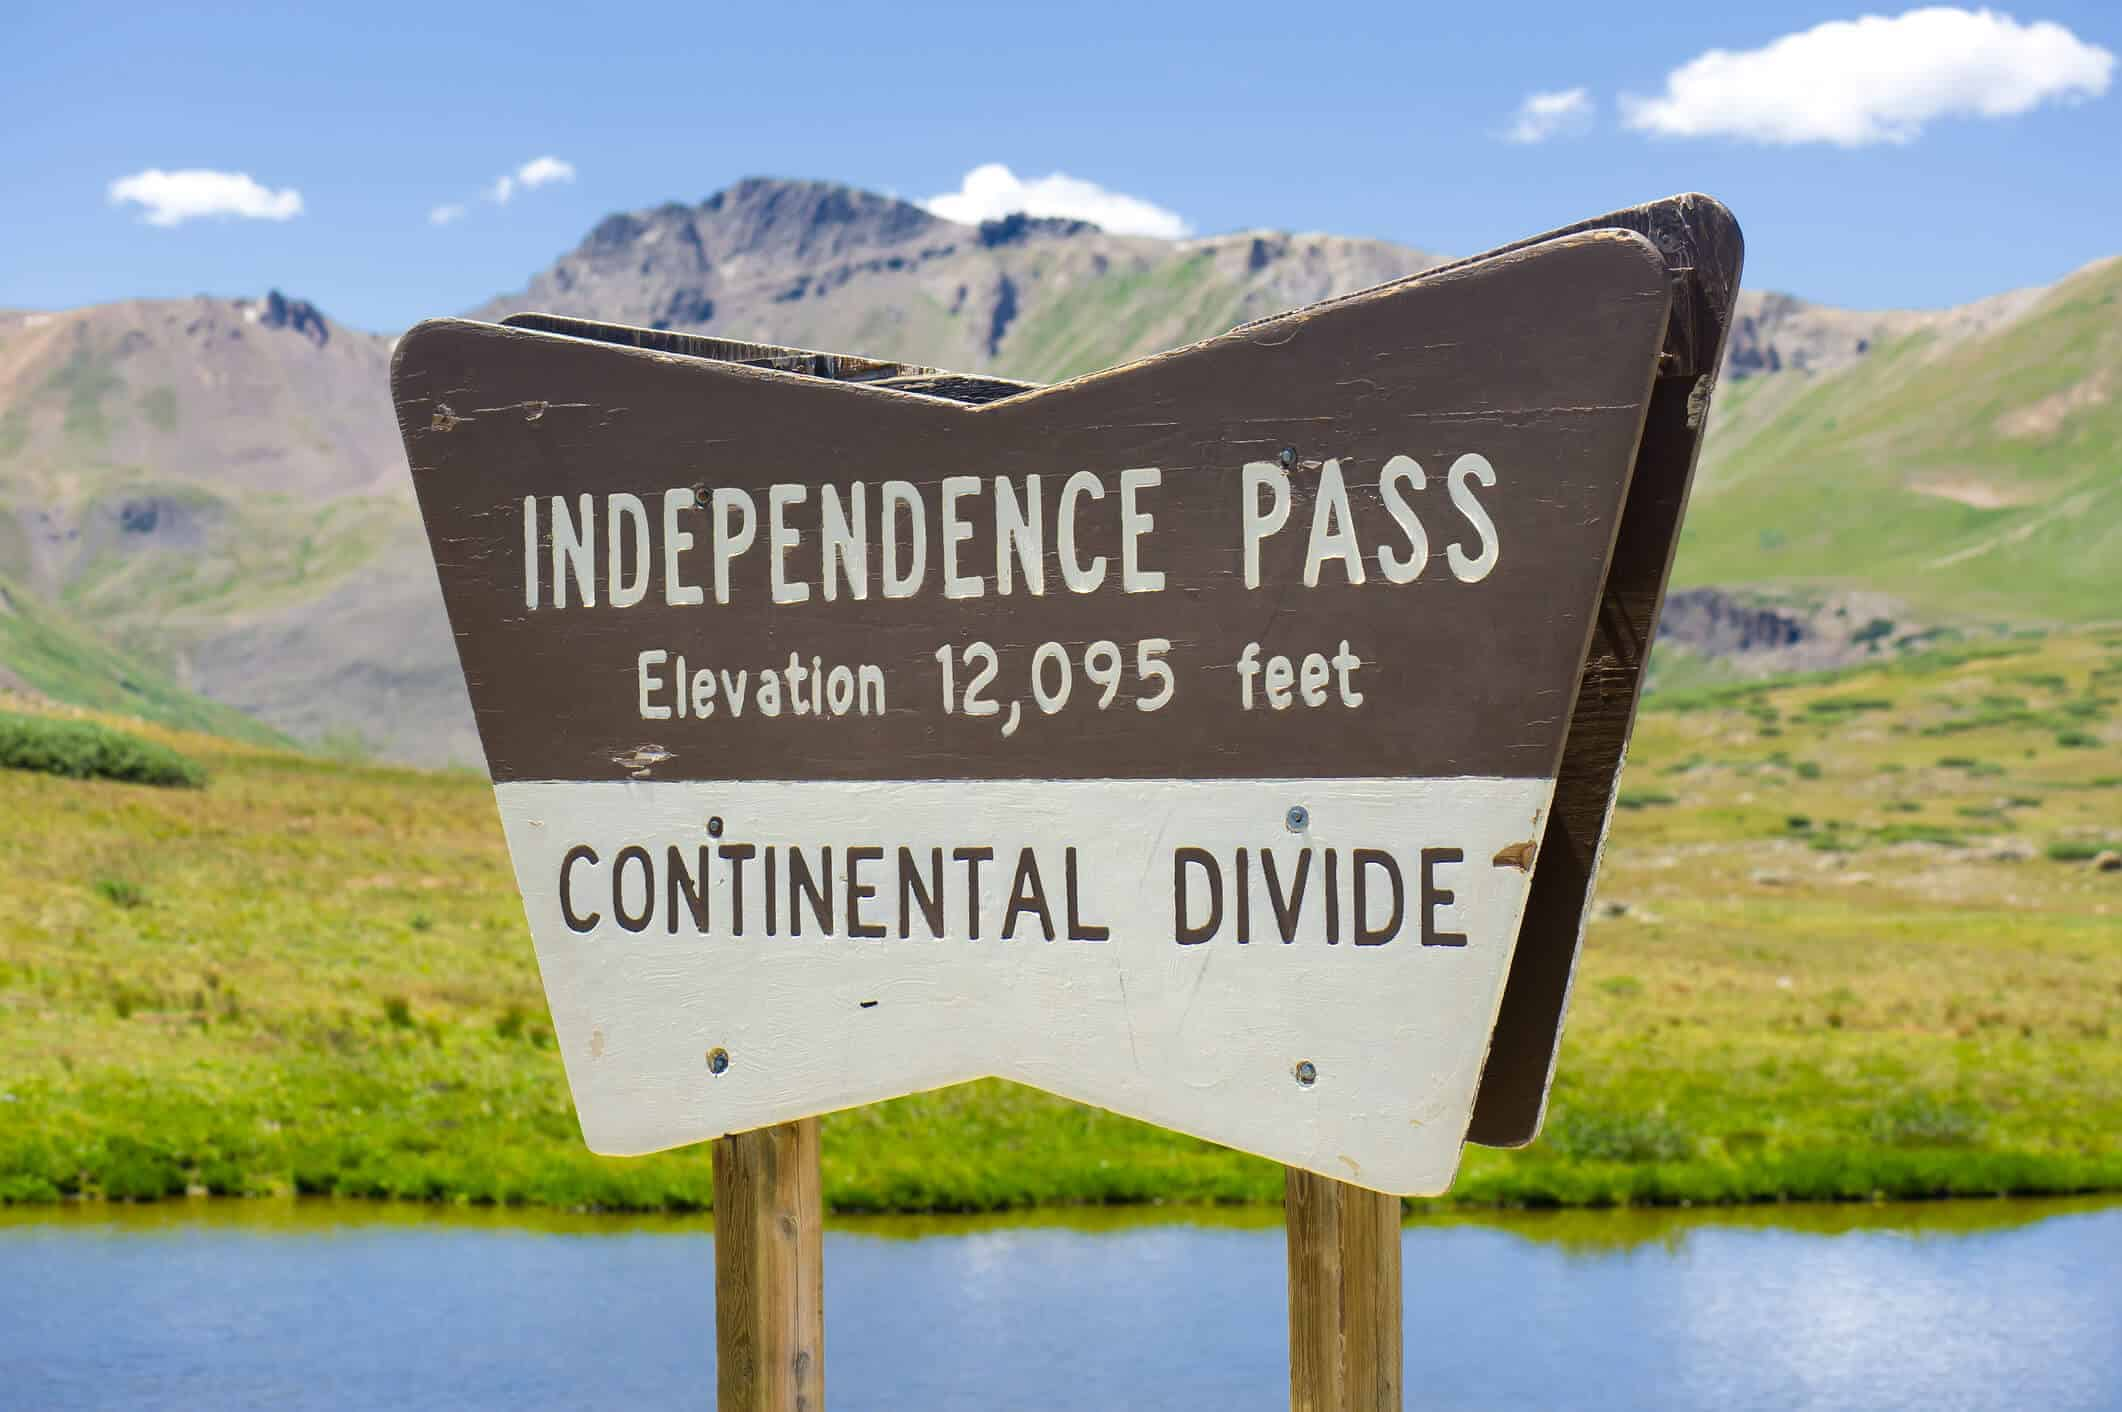 Independence Pass Aspen Colorado. Wood sign indicating the top of scenic mountain pass off of scenic bi-way road in the Rocky Mountains of Colorado. Elevation 12,095 Feet.